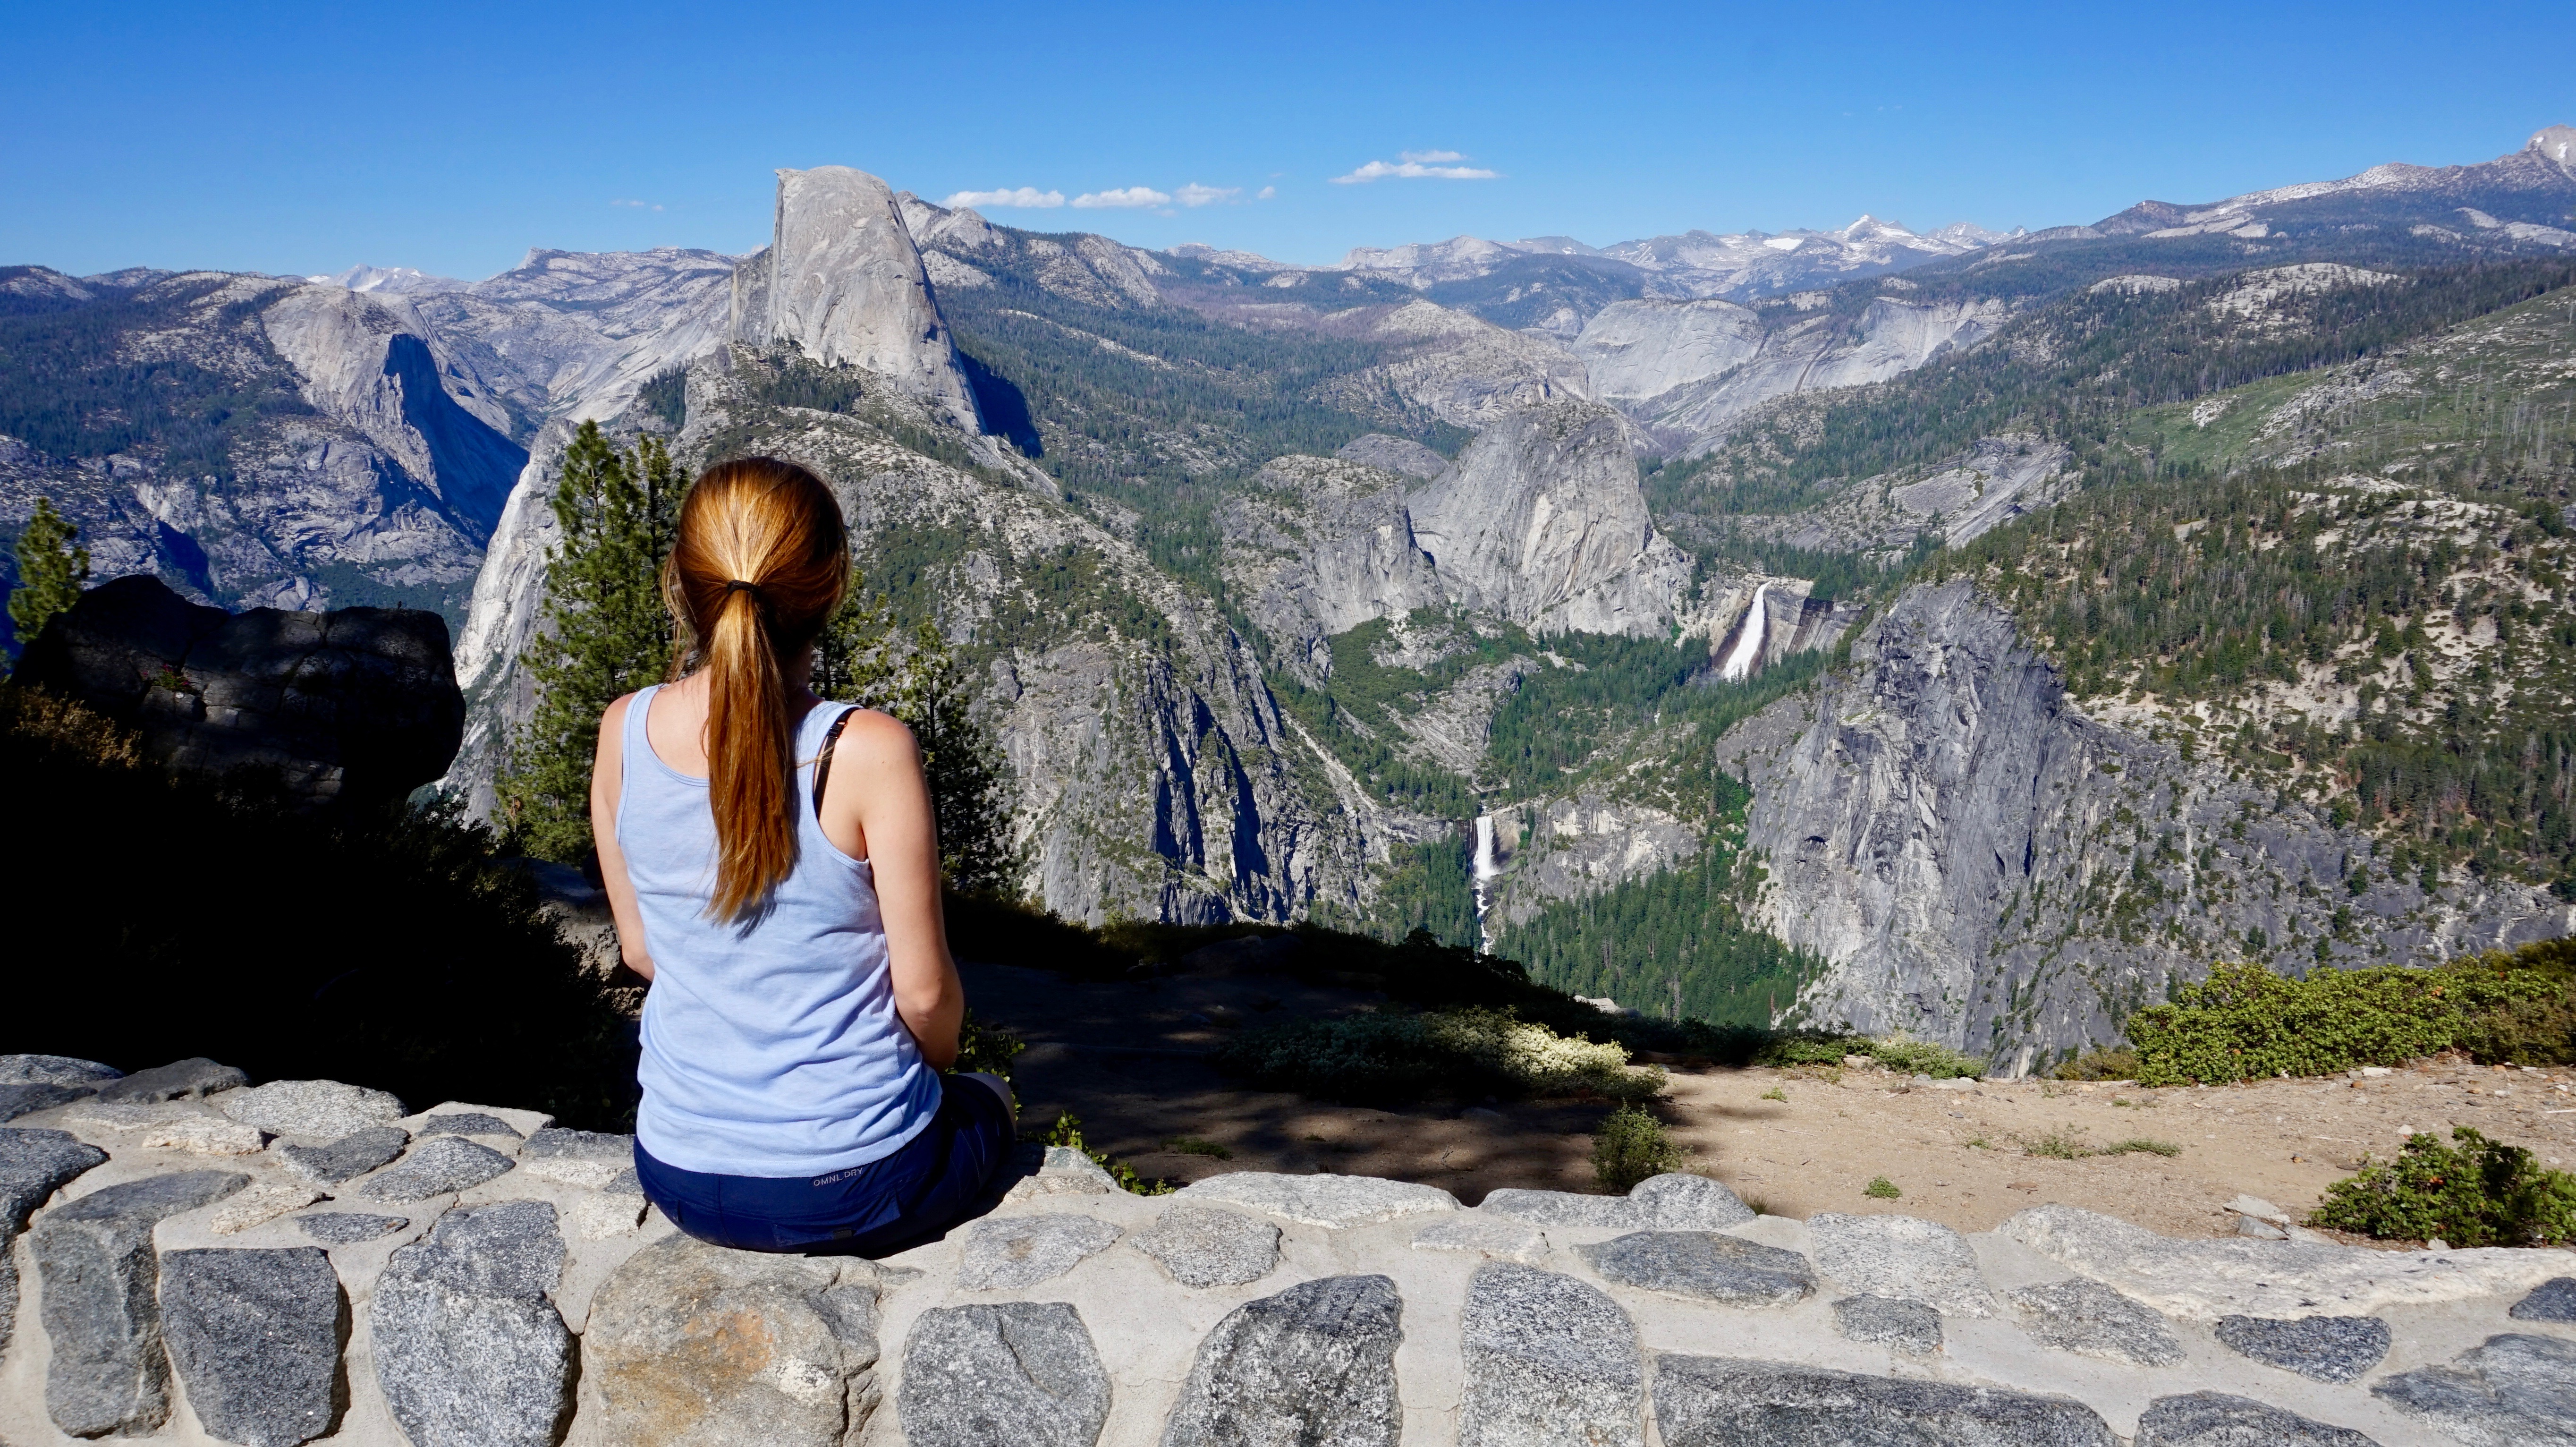 Me taking in the view from Glacier Point in Yosemite National Park